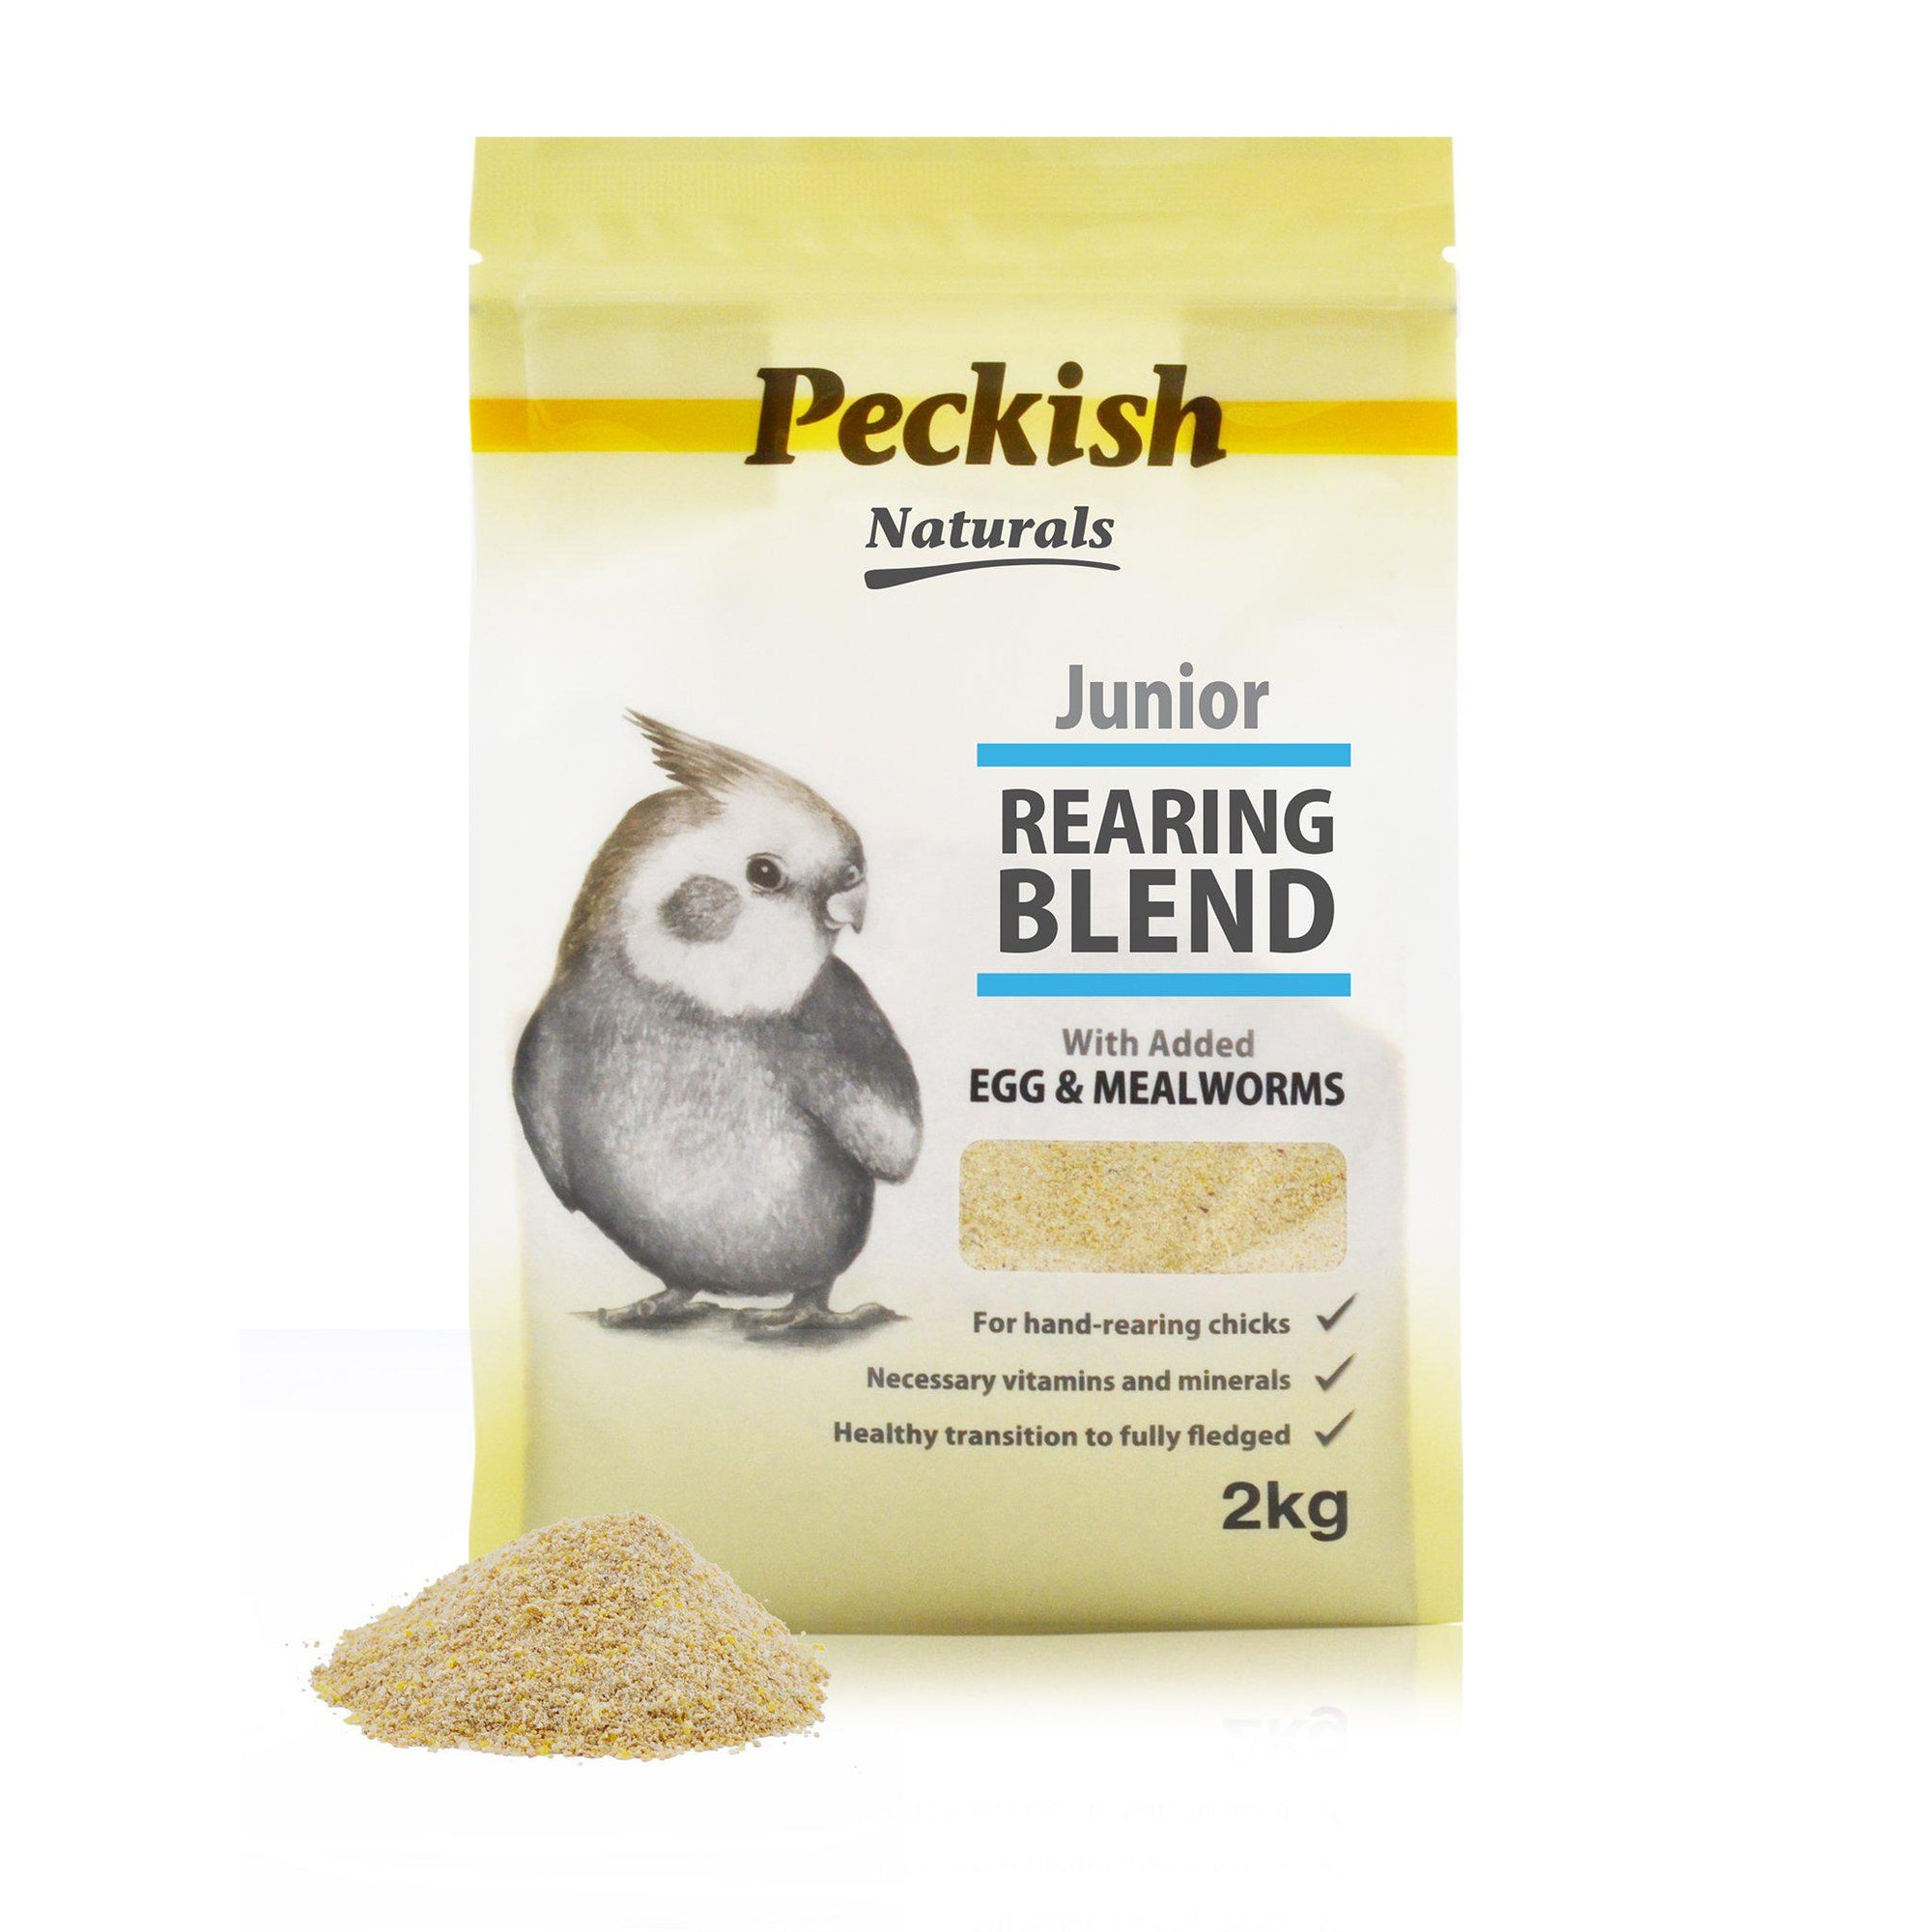 Peckish Naturals Junior Rearing Blend - Egg & Mealworm - ComfyPet Products